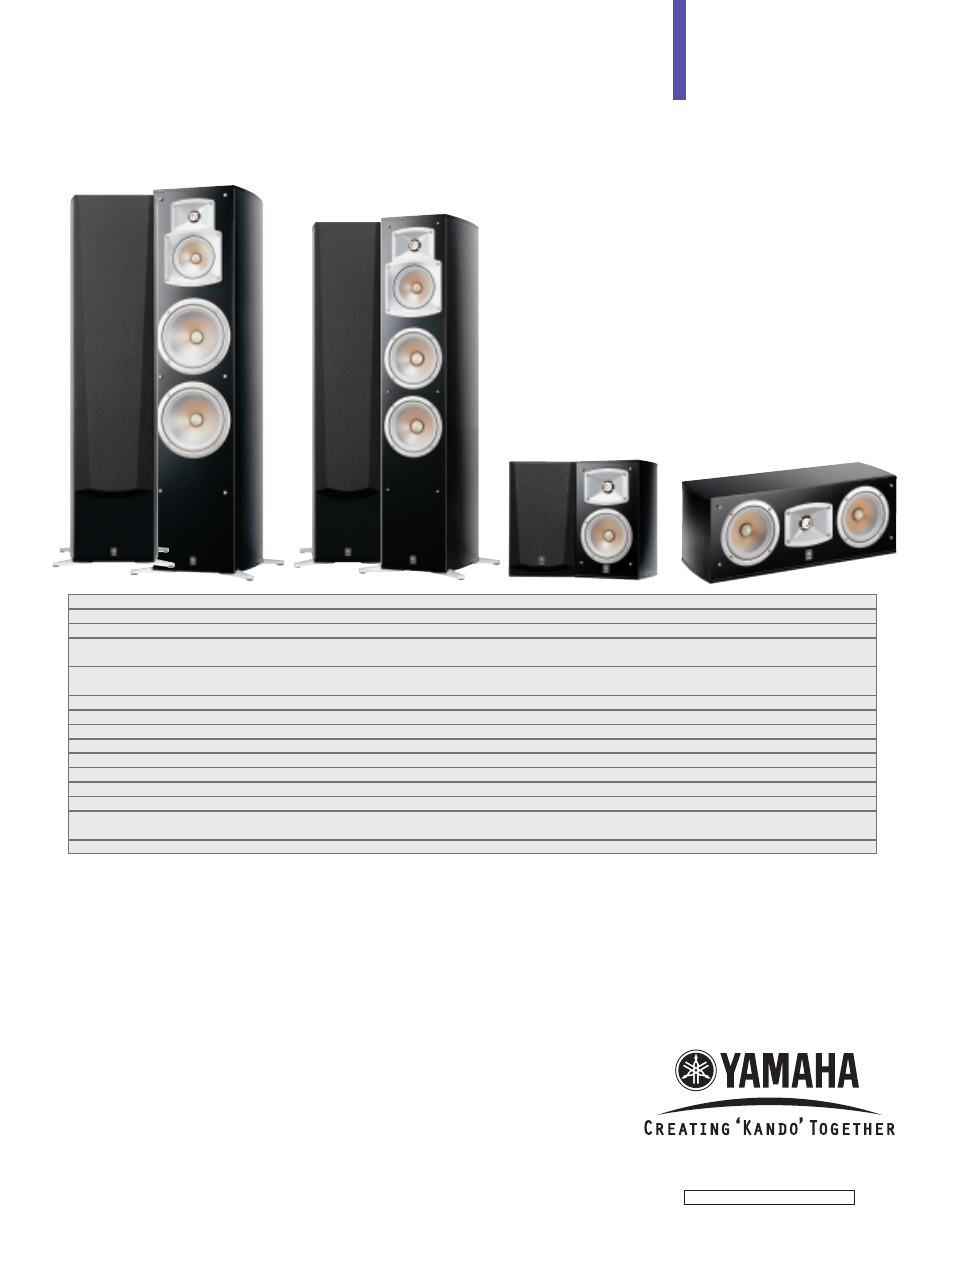 Yamaha Pmd Manual